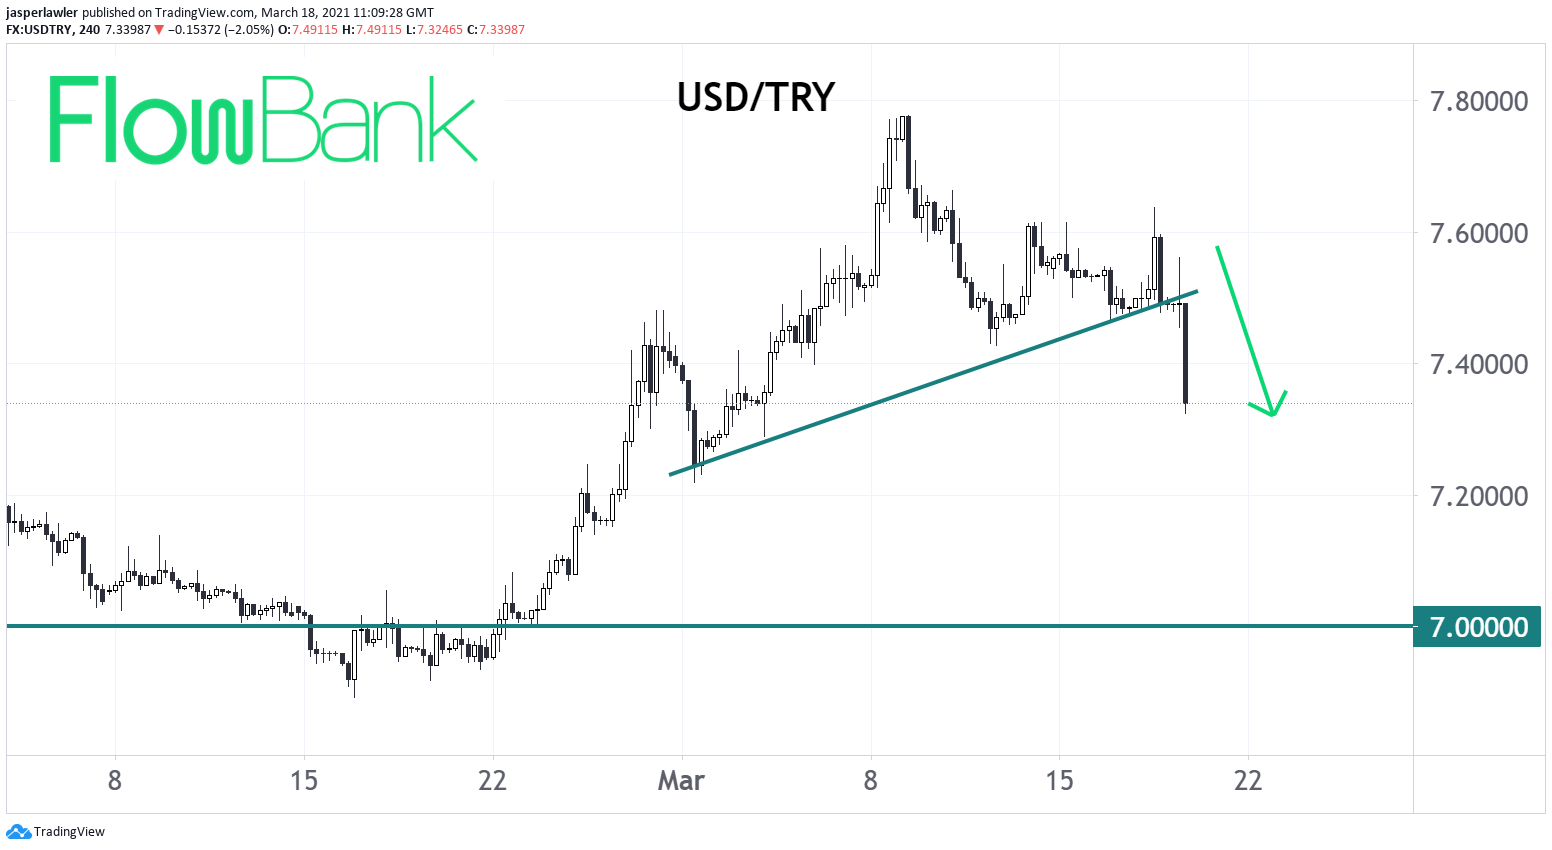 USD/TRY slides 2% to 7.35 after Turkish CB hikes rates by 200 bps to 19%